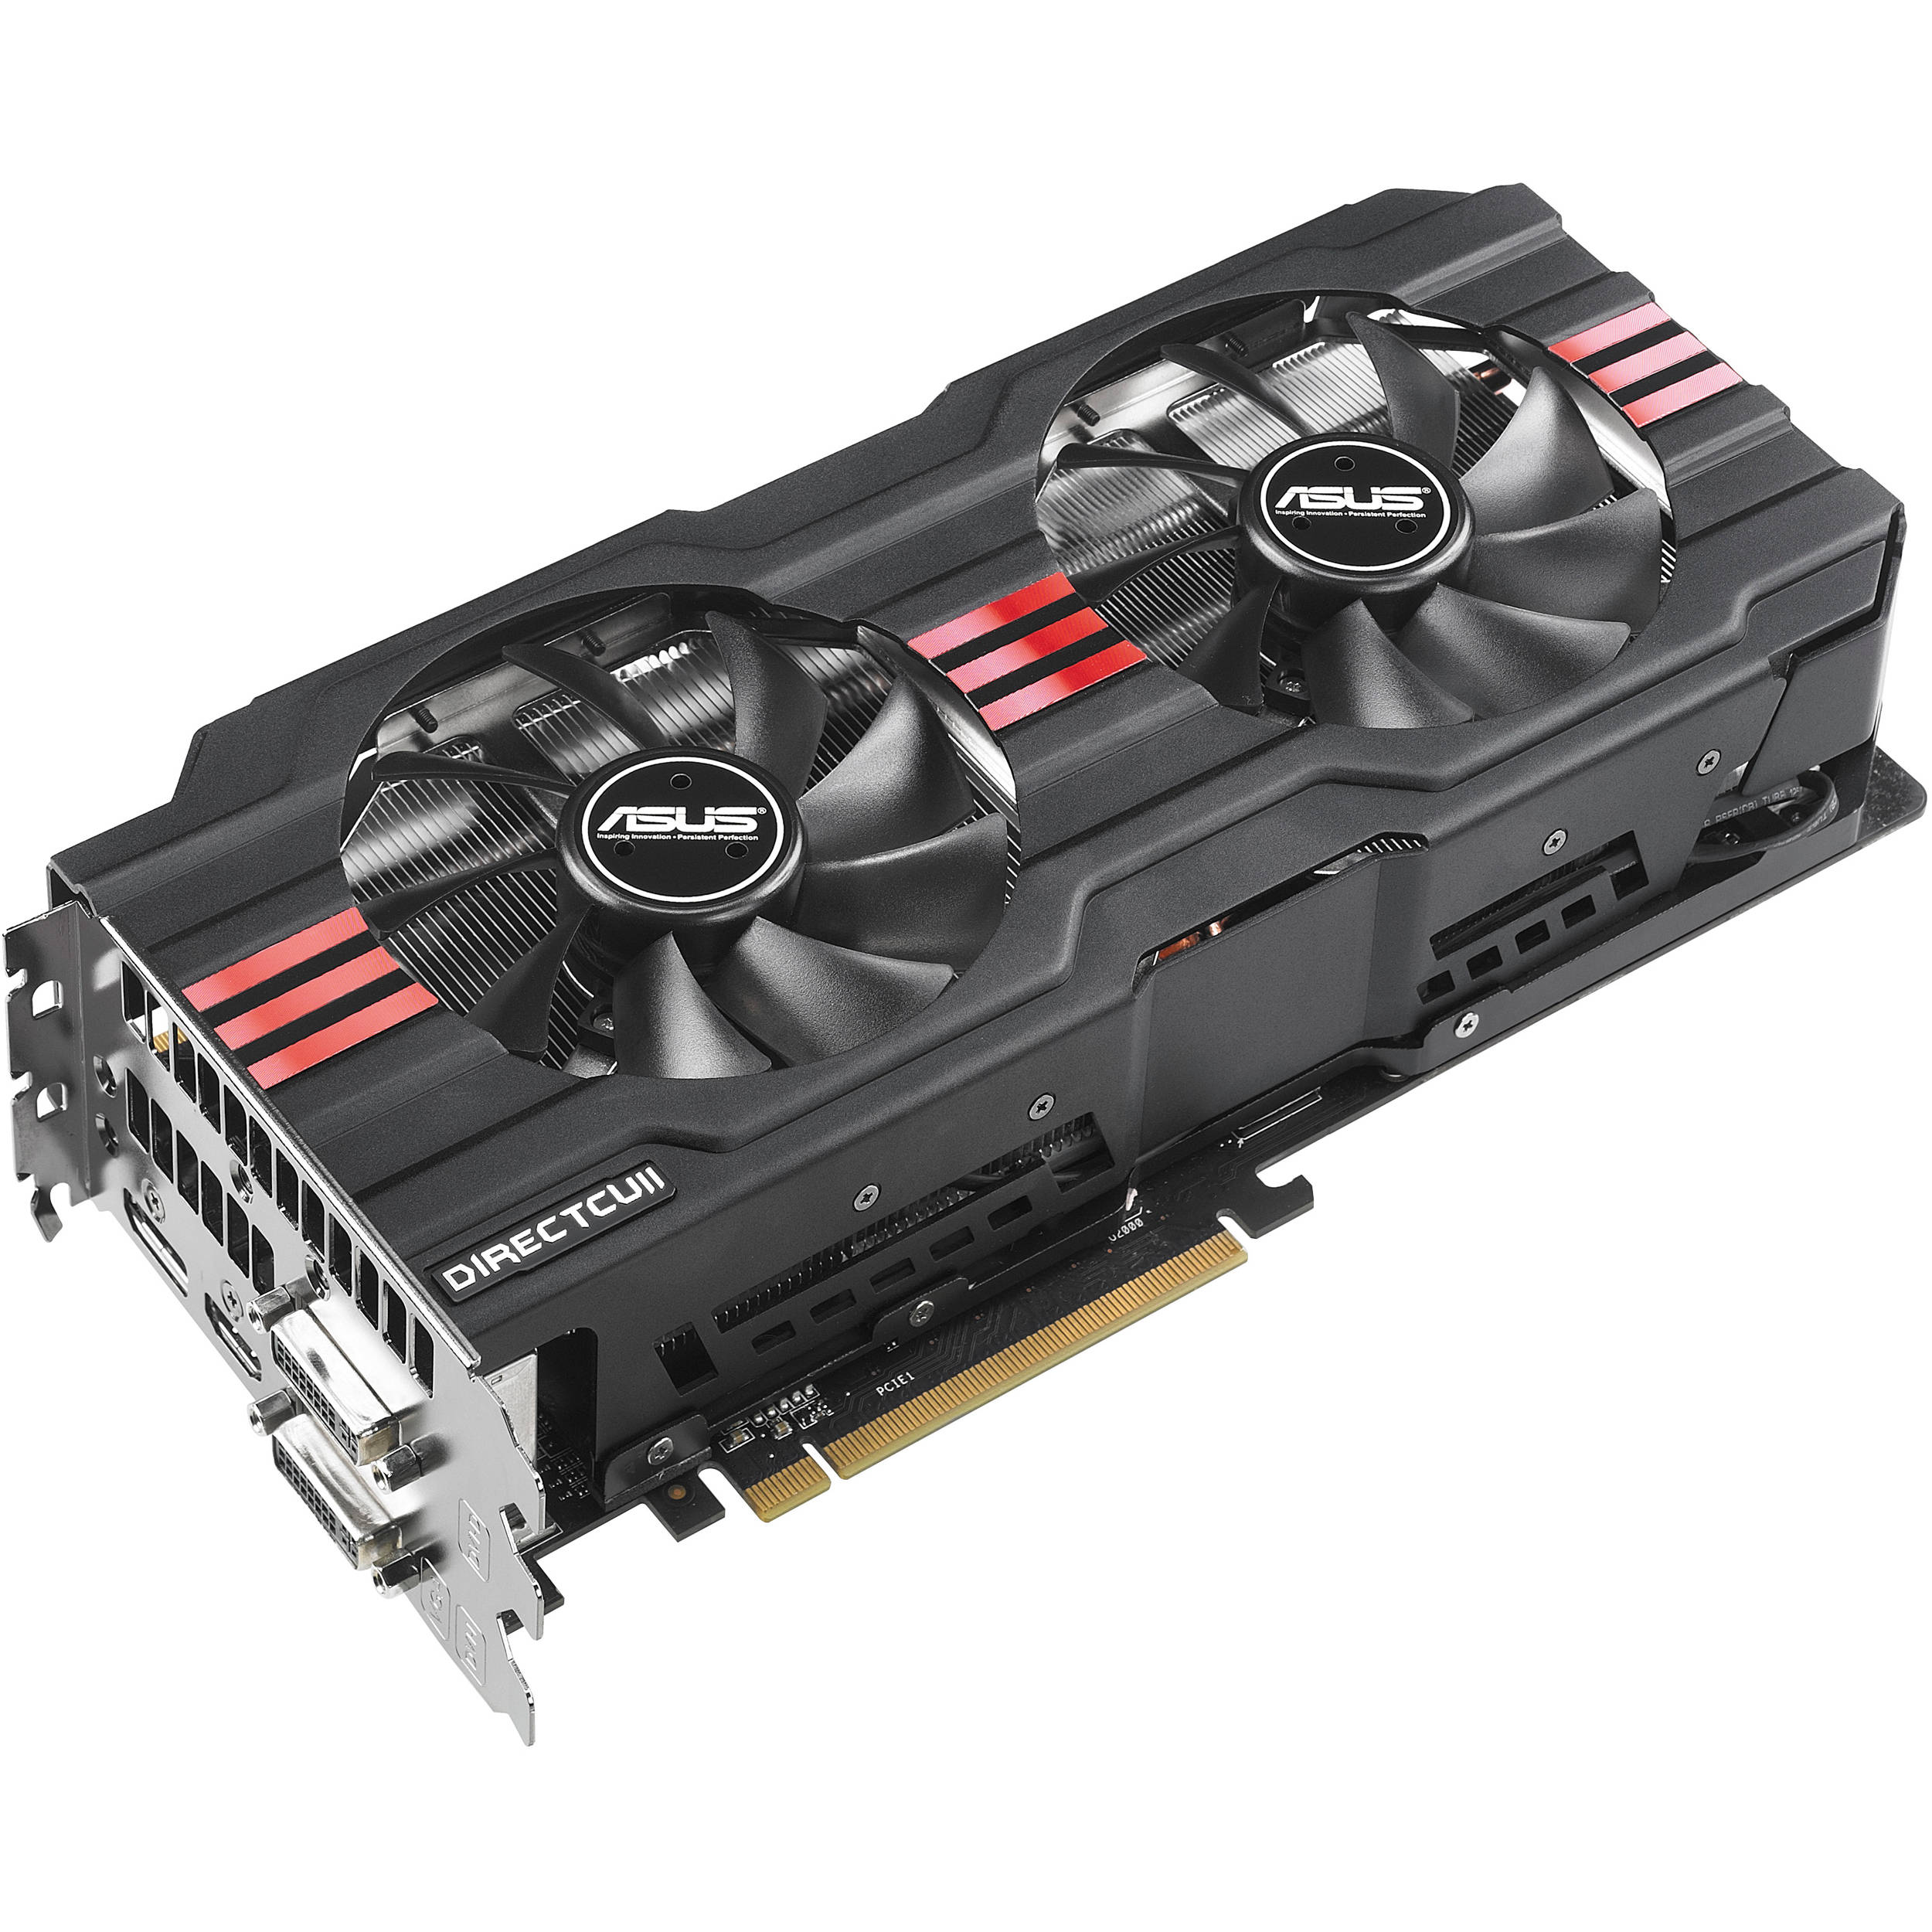 Radeon HD 7950: characteristics, comparison with peers and reviews 67